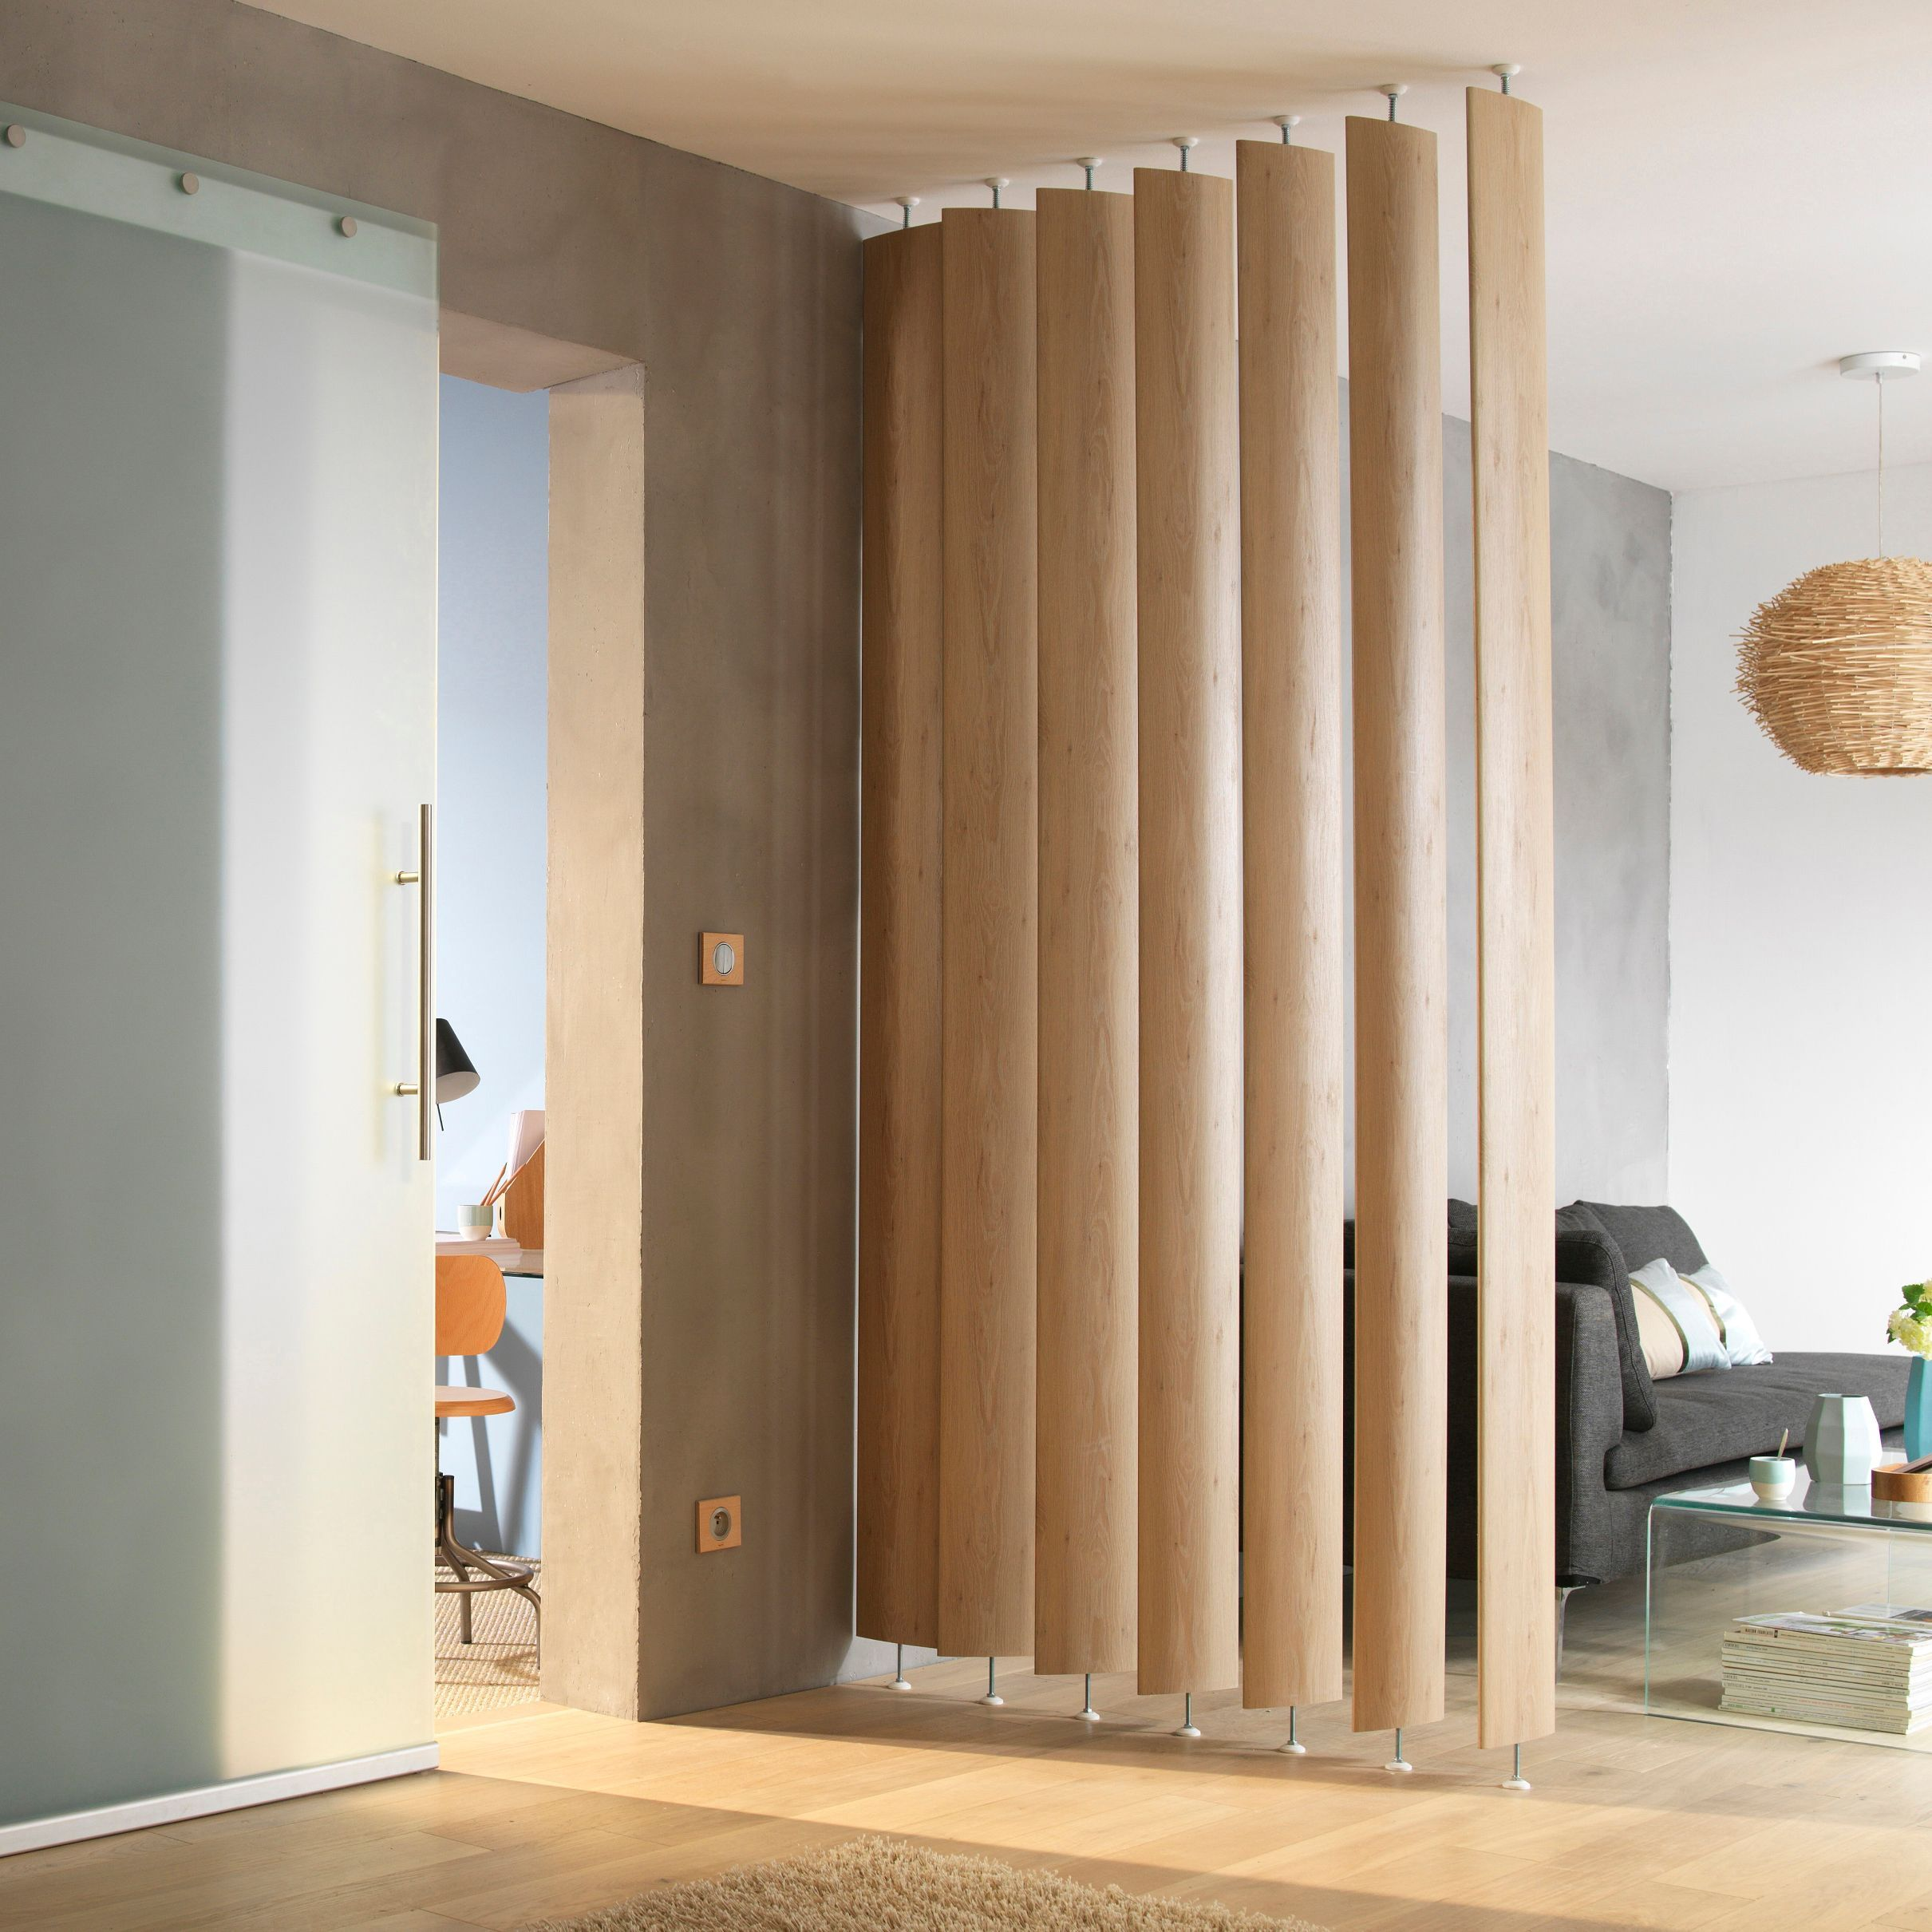 5397007202892 01i Room Divider Curtain Room Divider Walls Wood